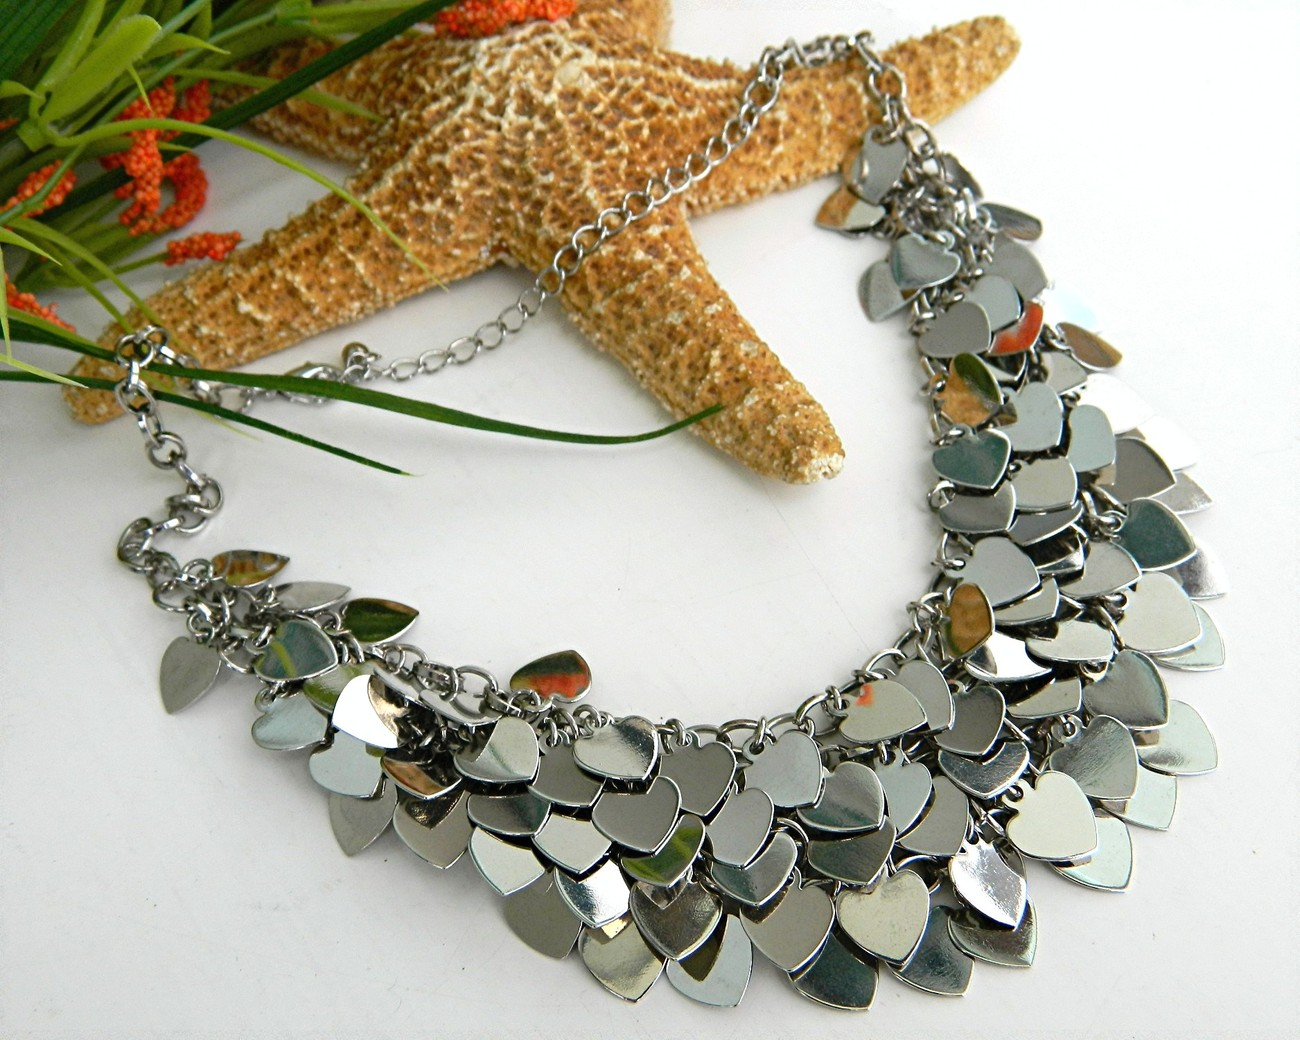 Vintage Multiple Hearts Bib Necklace Layered Silver Chain